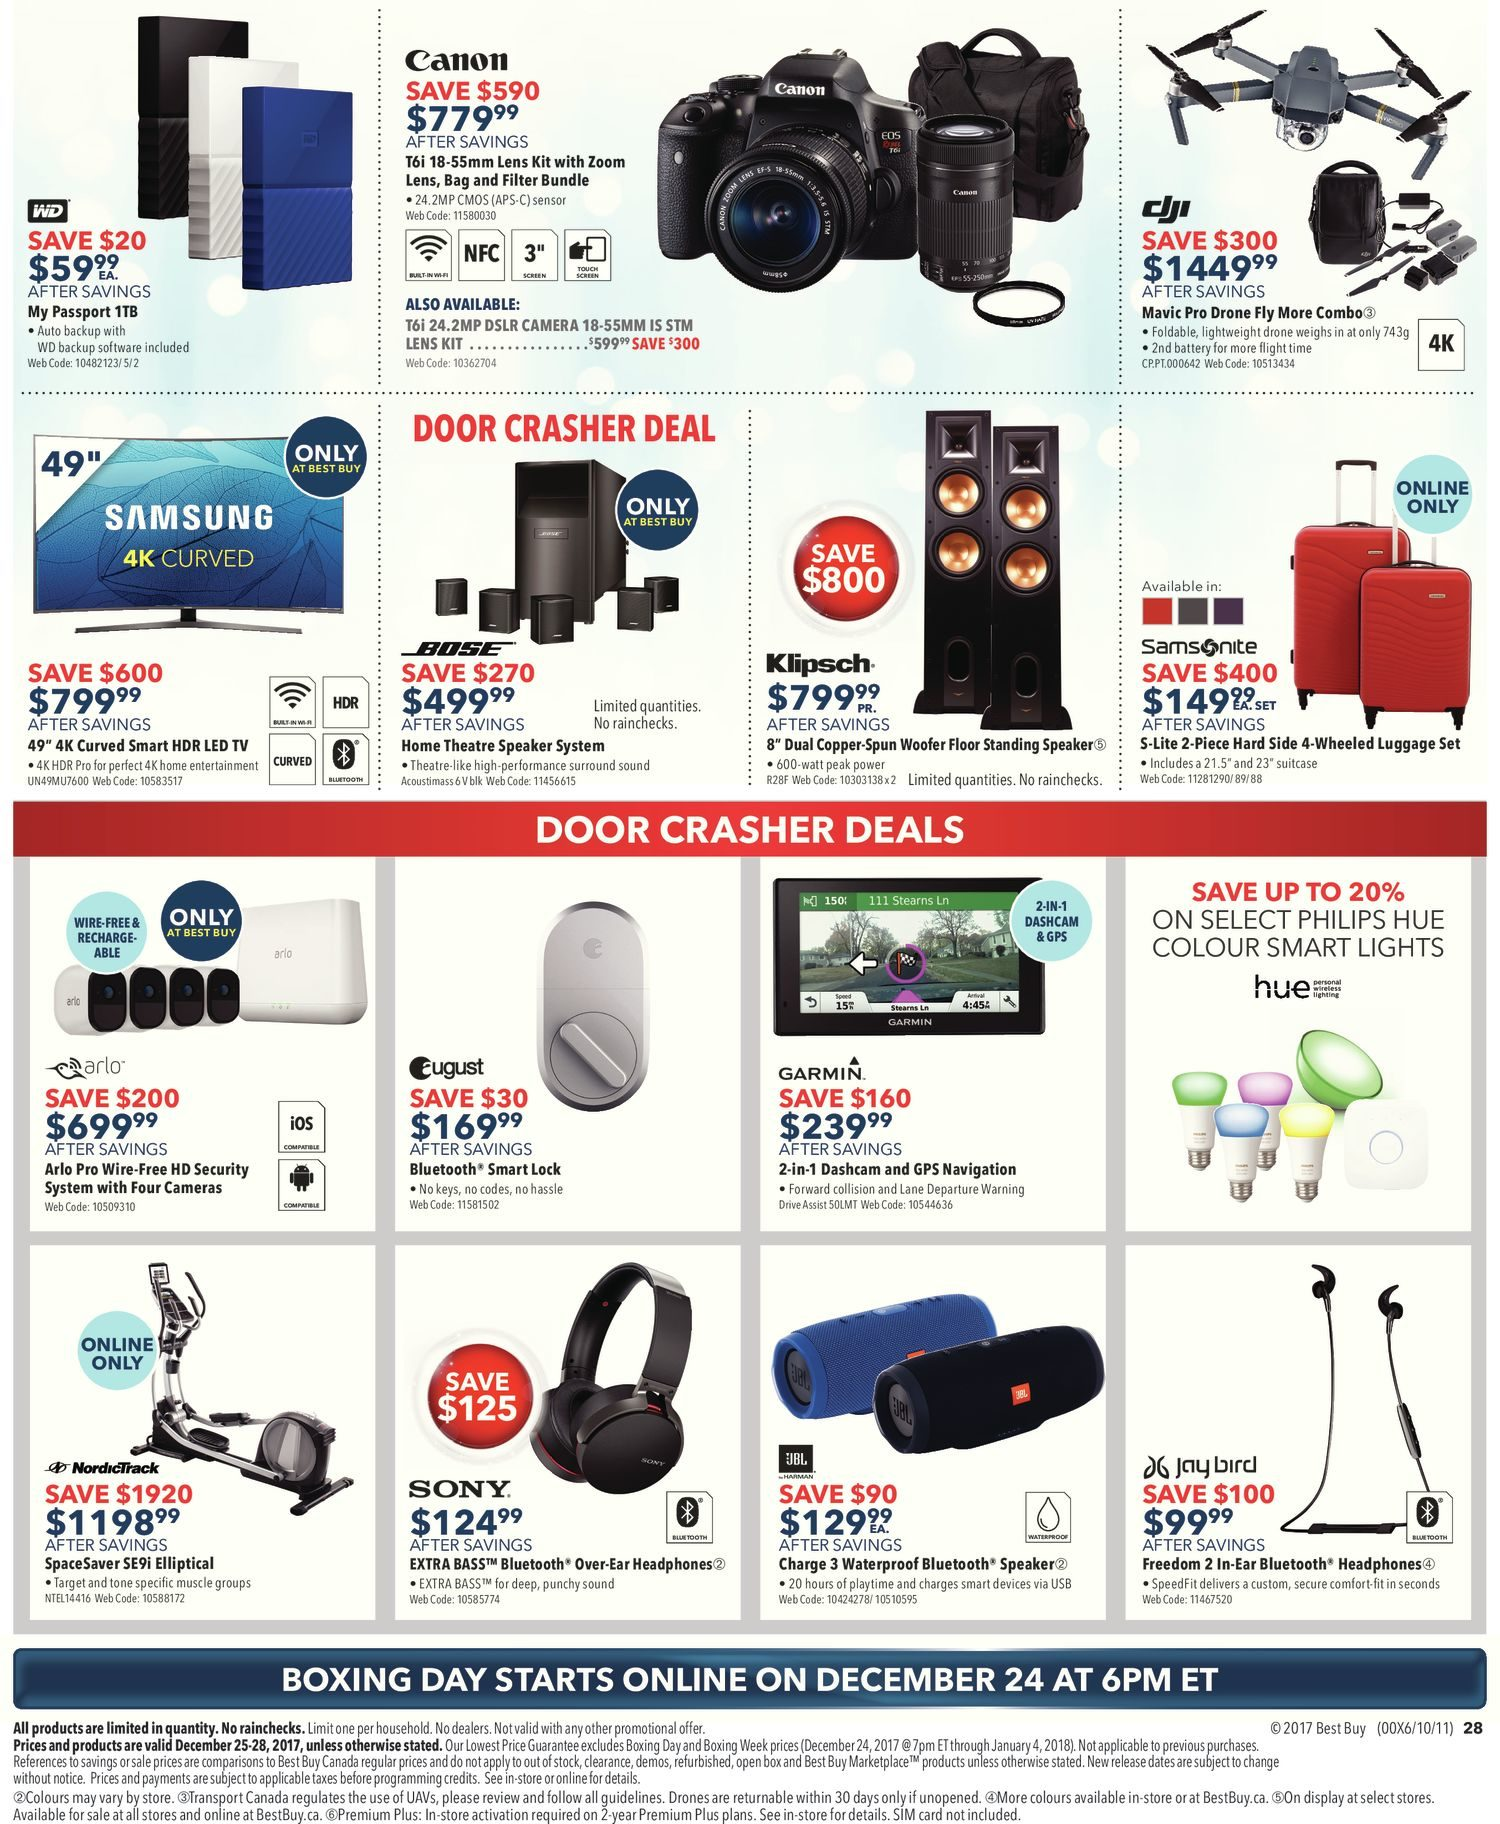 Best Buy Weekly Flyer Boxing Day Sale Dec 25 Uv Glue For Dvd Digital Camera Laserlenscircuit Board Bonding